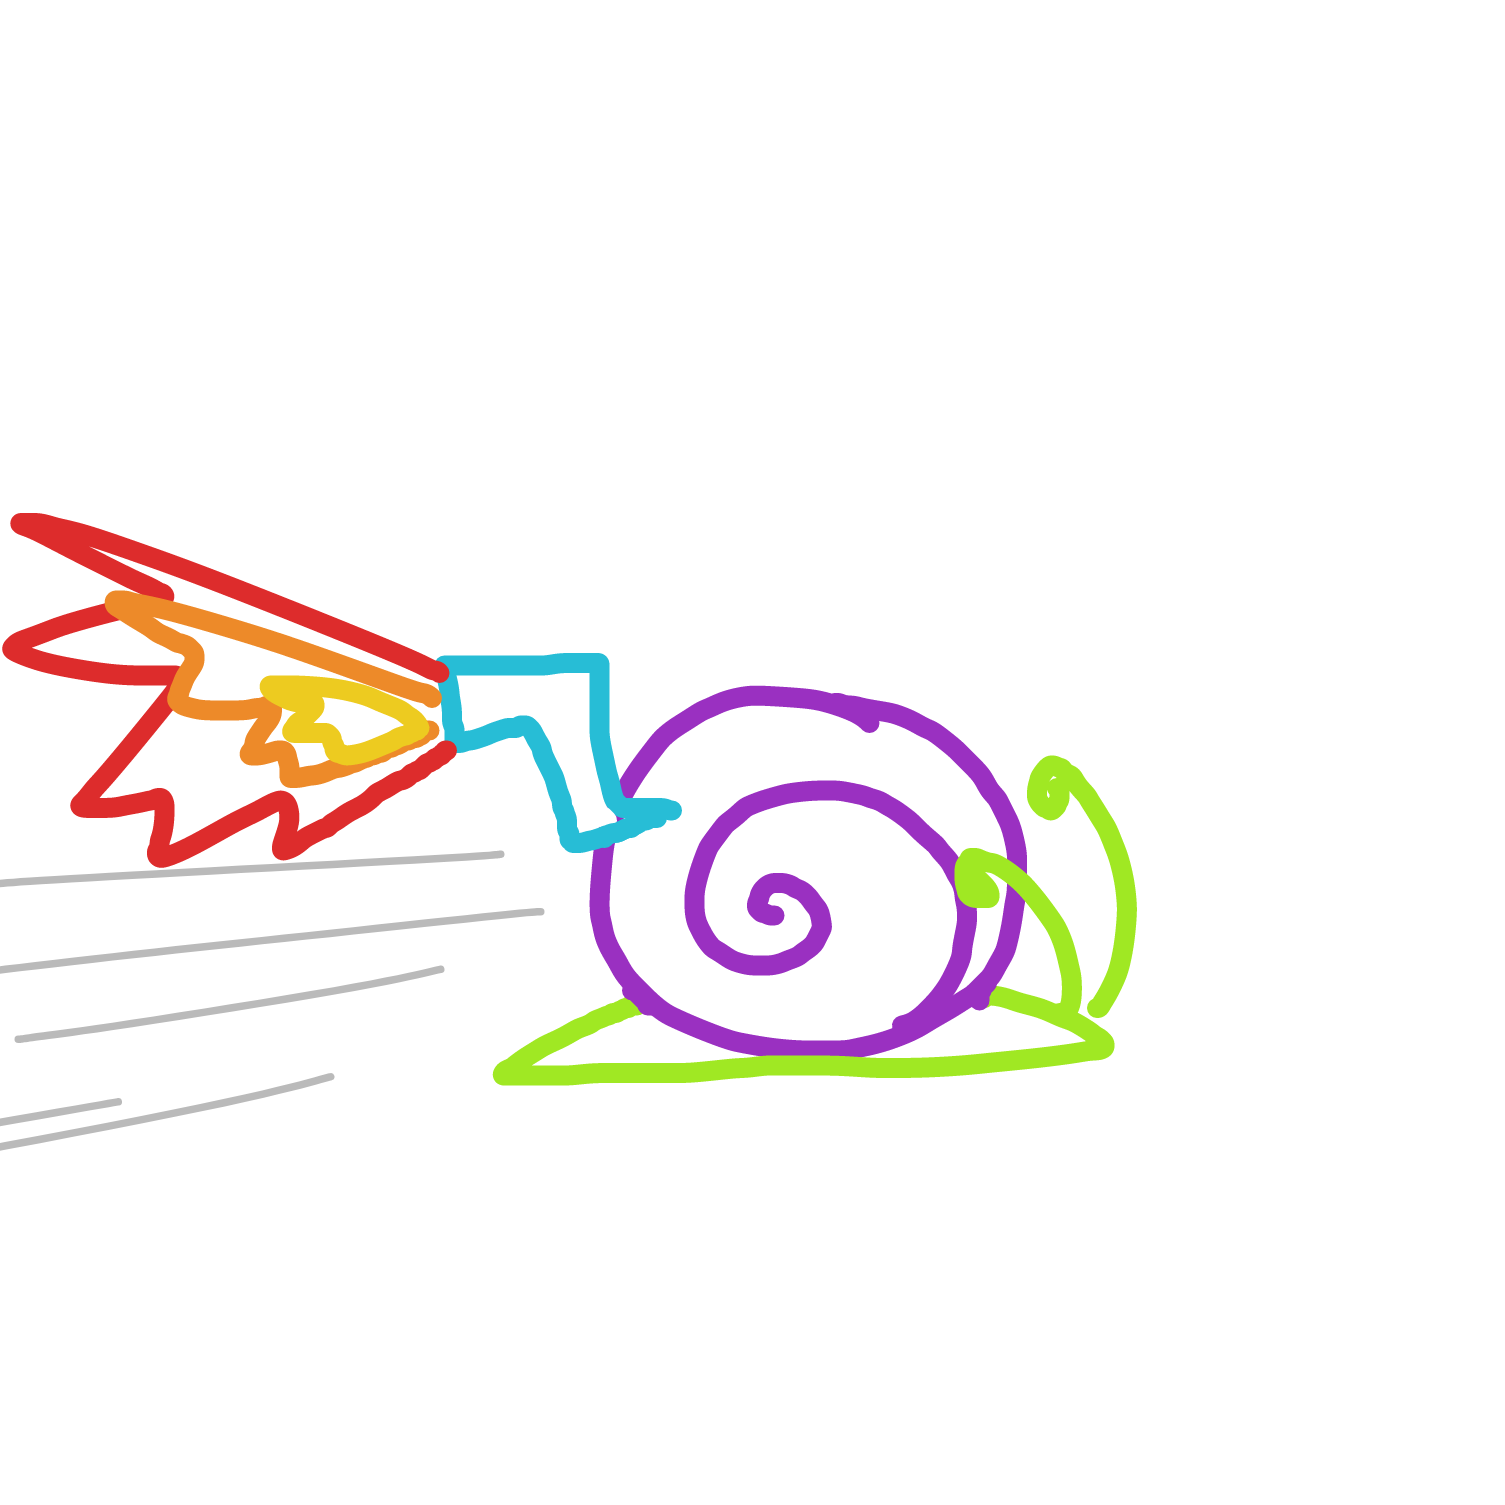 Drawing in snail go brrrrr by dummythicc